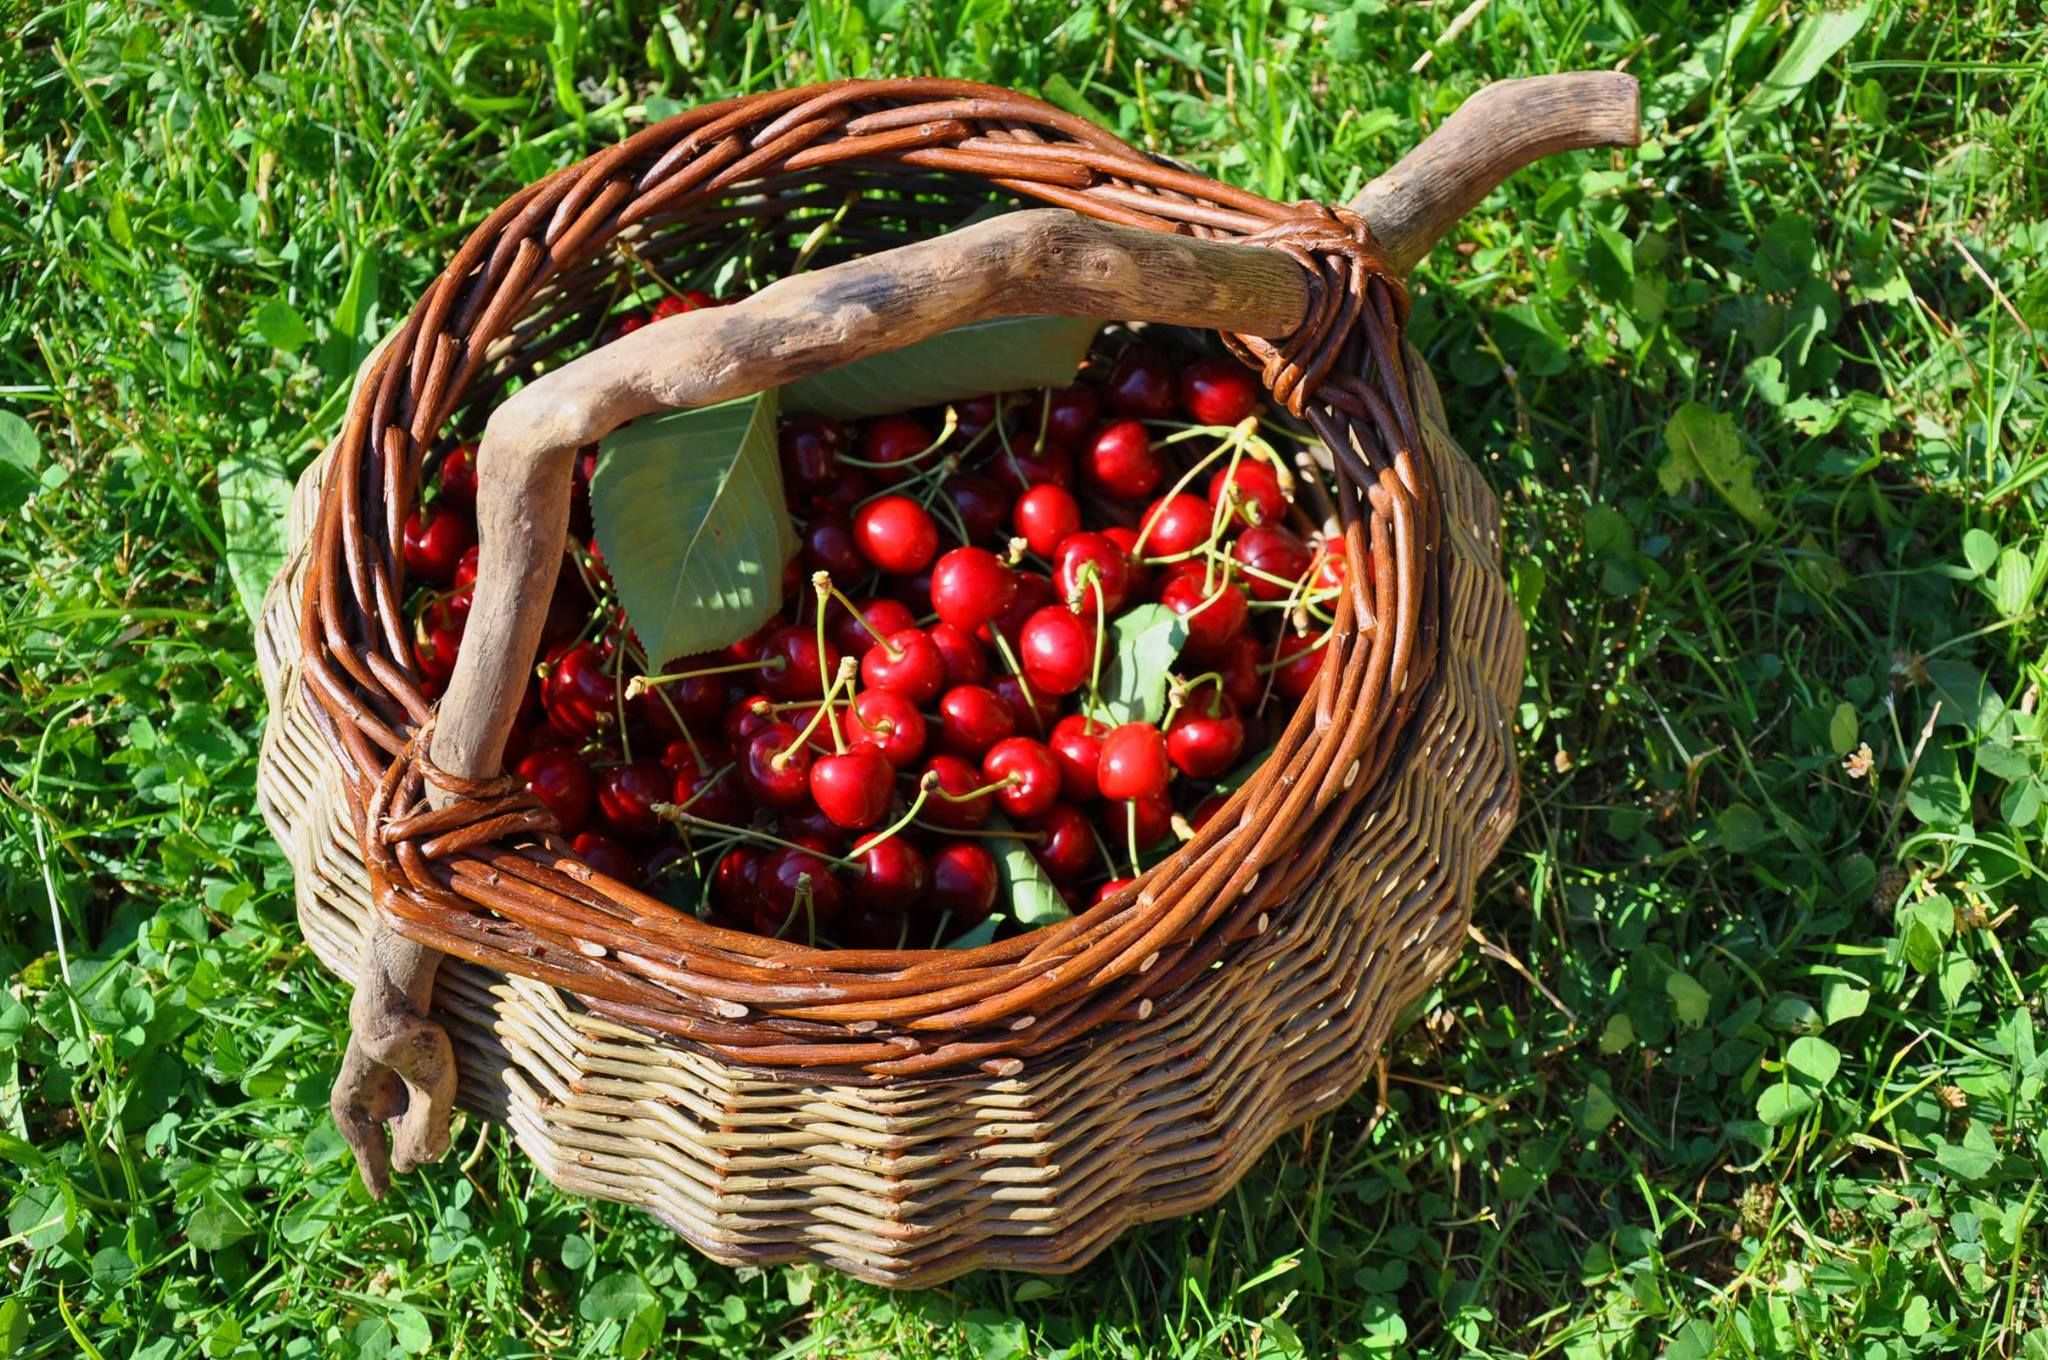 BoisDore, Alsace, France. Come and visit us in the cherry season for homemade clafoutis and jams or freshly picked for breakfast http://www.organicholidays.co.uk/at/3333.htm